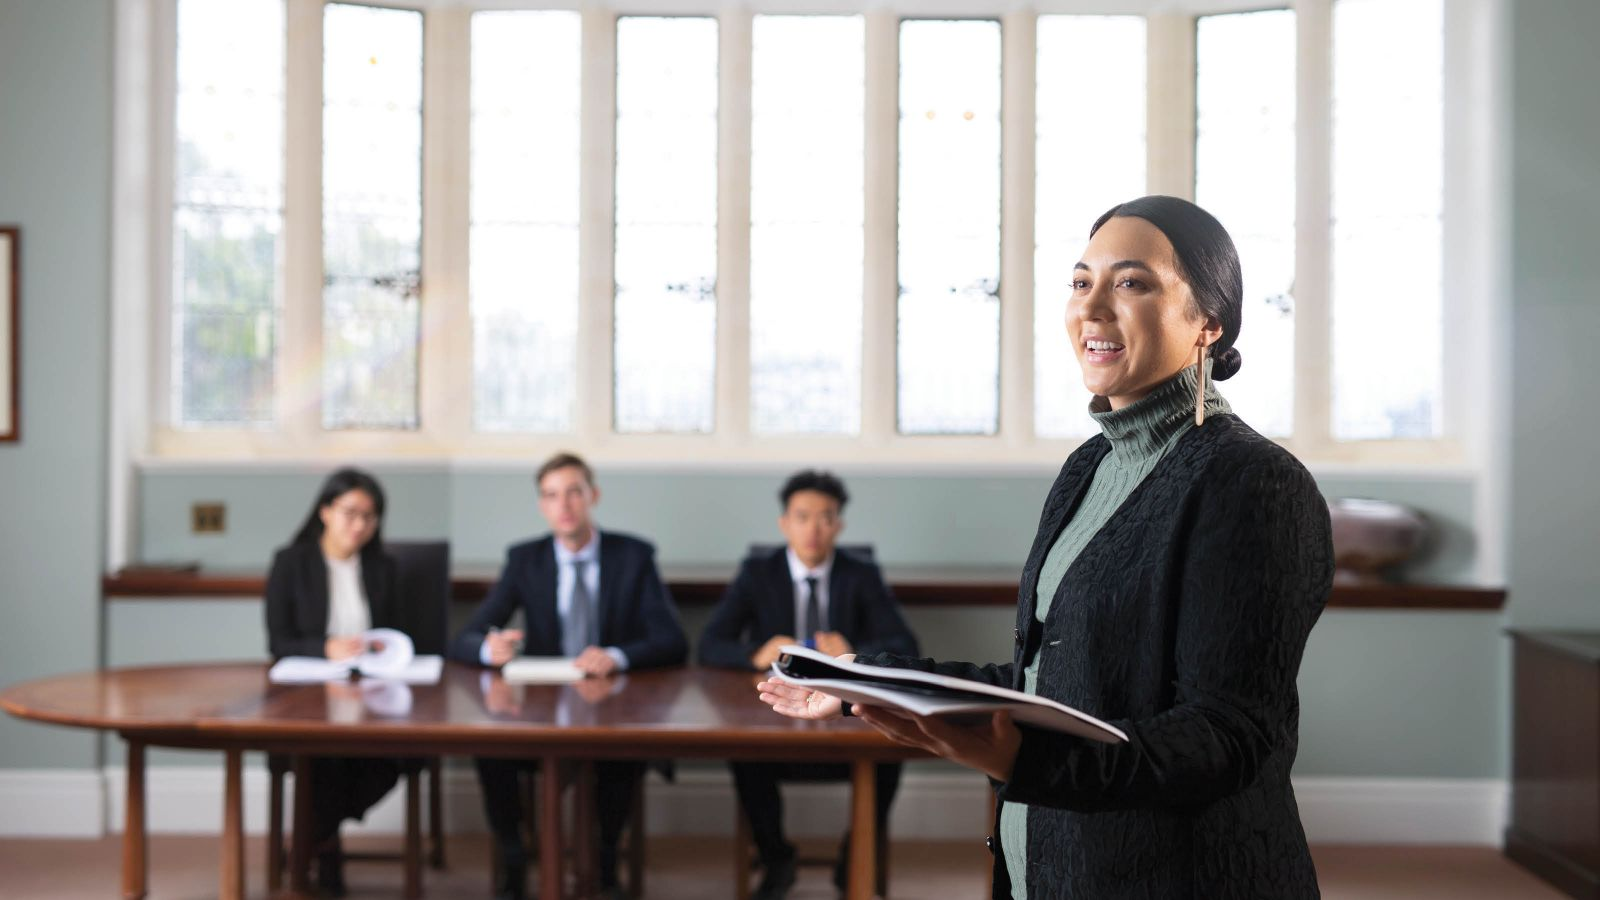 A female undergraduate law student is standing, holding a document, and mooting in front of a panel of three judges who are seated at a table.